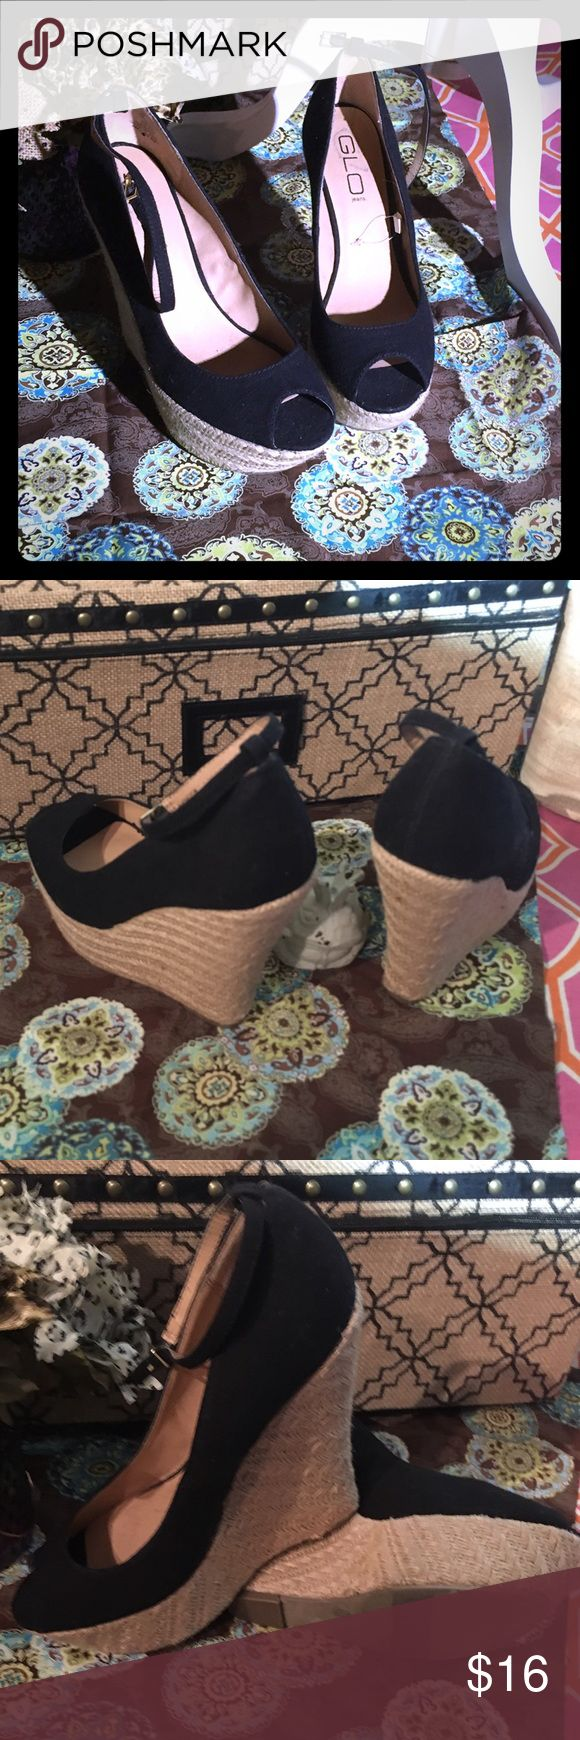 GLO jeans Wedges NWOT Black peep toe wedges with the woven straw design. GLO Jeans Shoes Wedges